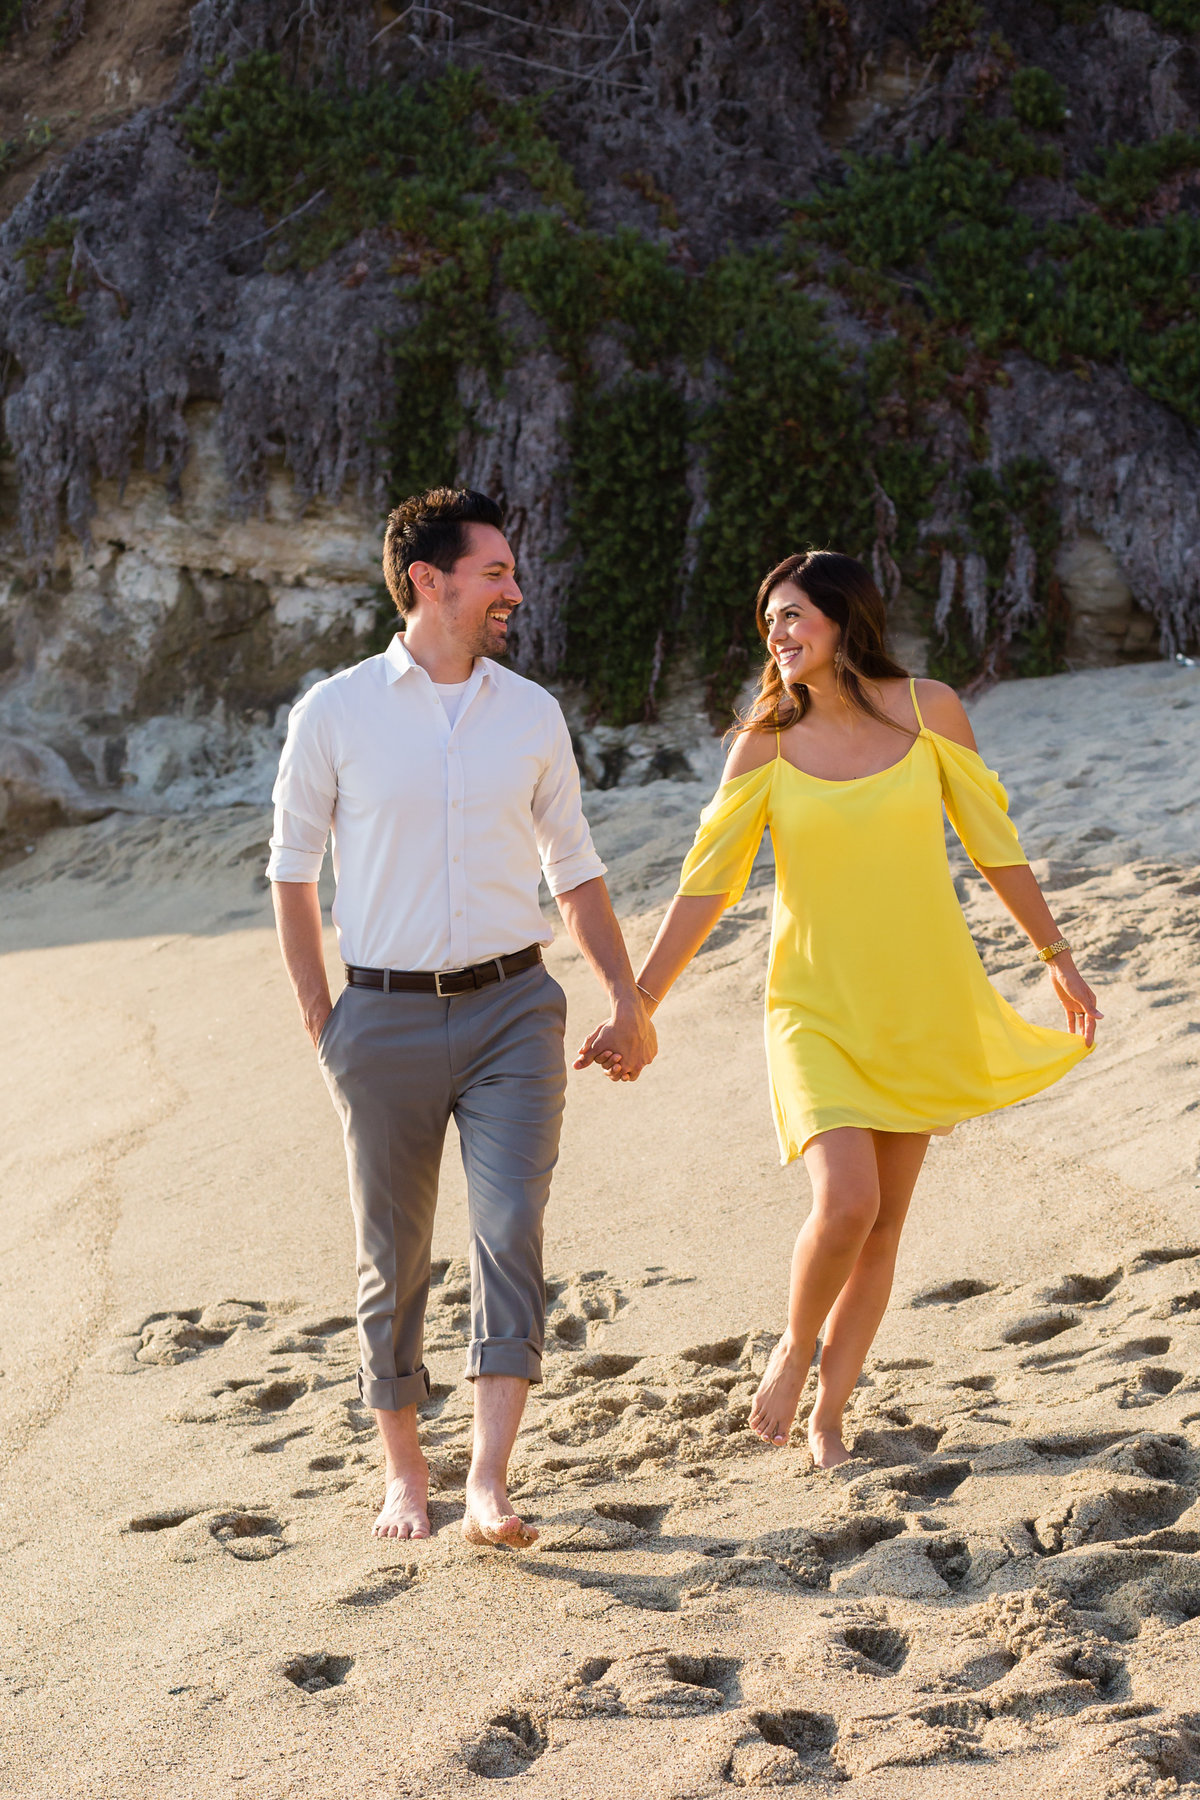 Outdoor Beach Sand Rocks Couple